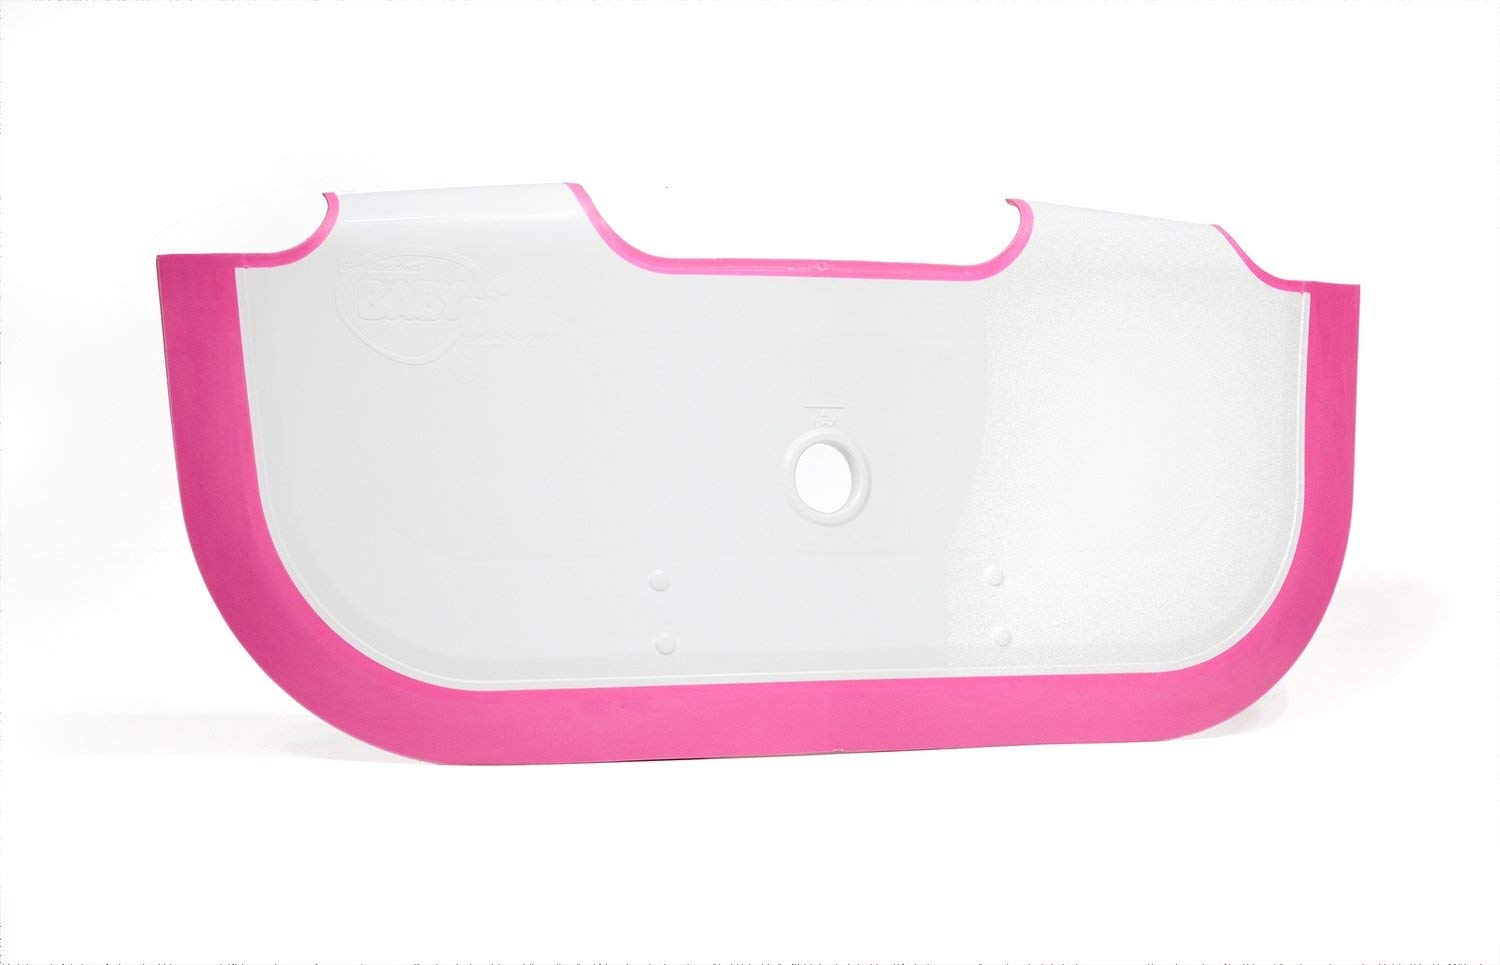 ** NEW ** BabyDam Bathwater Barrier | Baby Bath Tub | Converts A Standard Bath To A Baby Bath (White|Pink) v9103